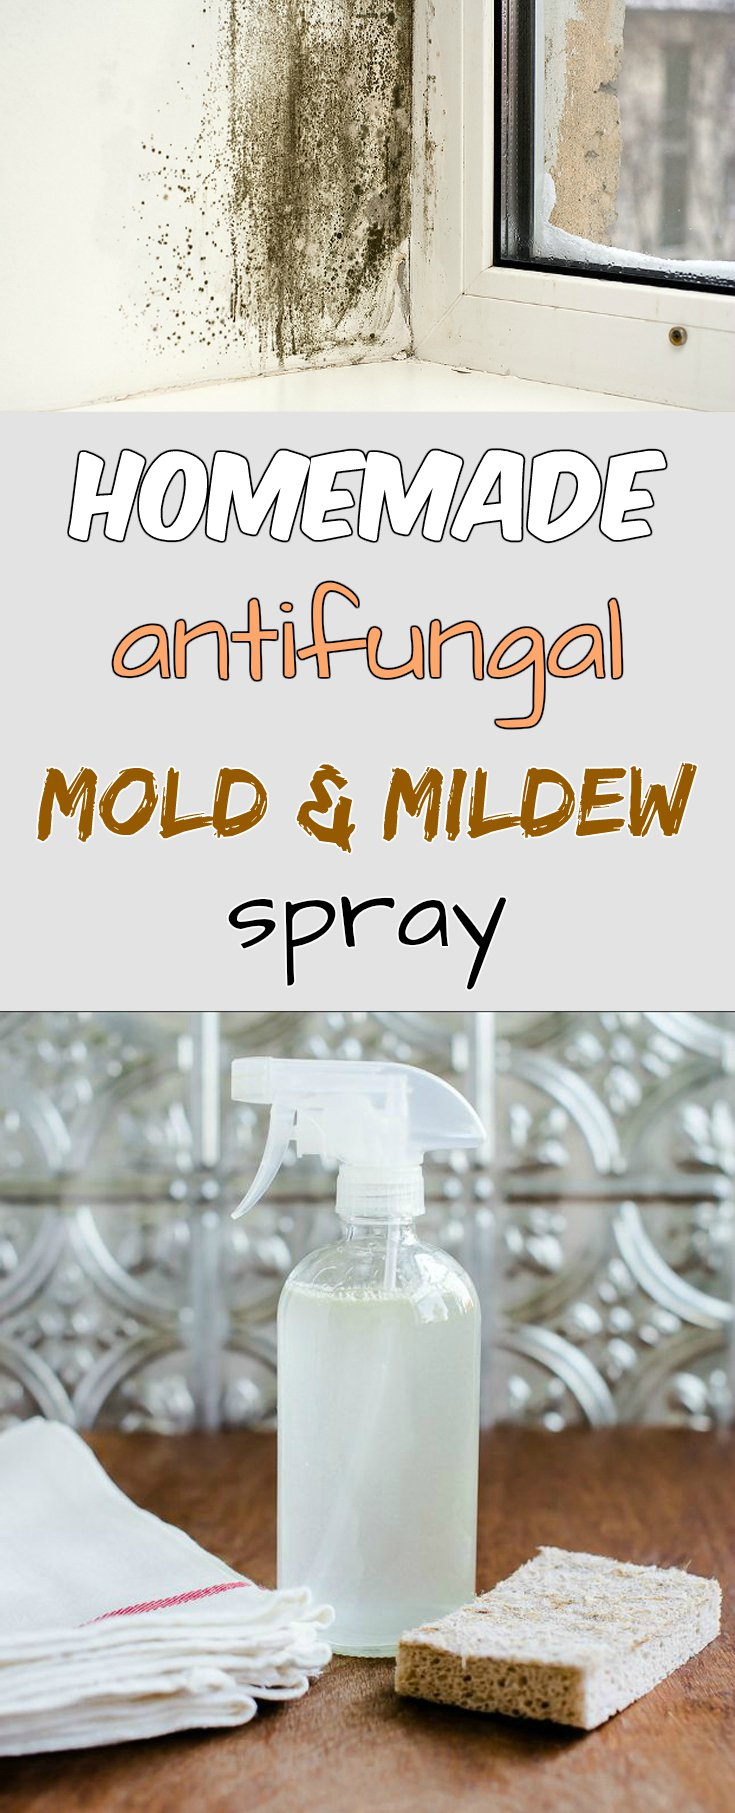 How To Get Rid Of Mildew >> Homemade antifungal mold and mildew spray - myCleaningSolutions.com